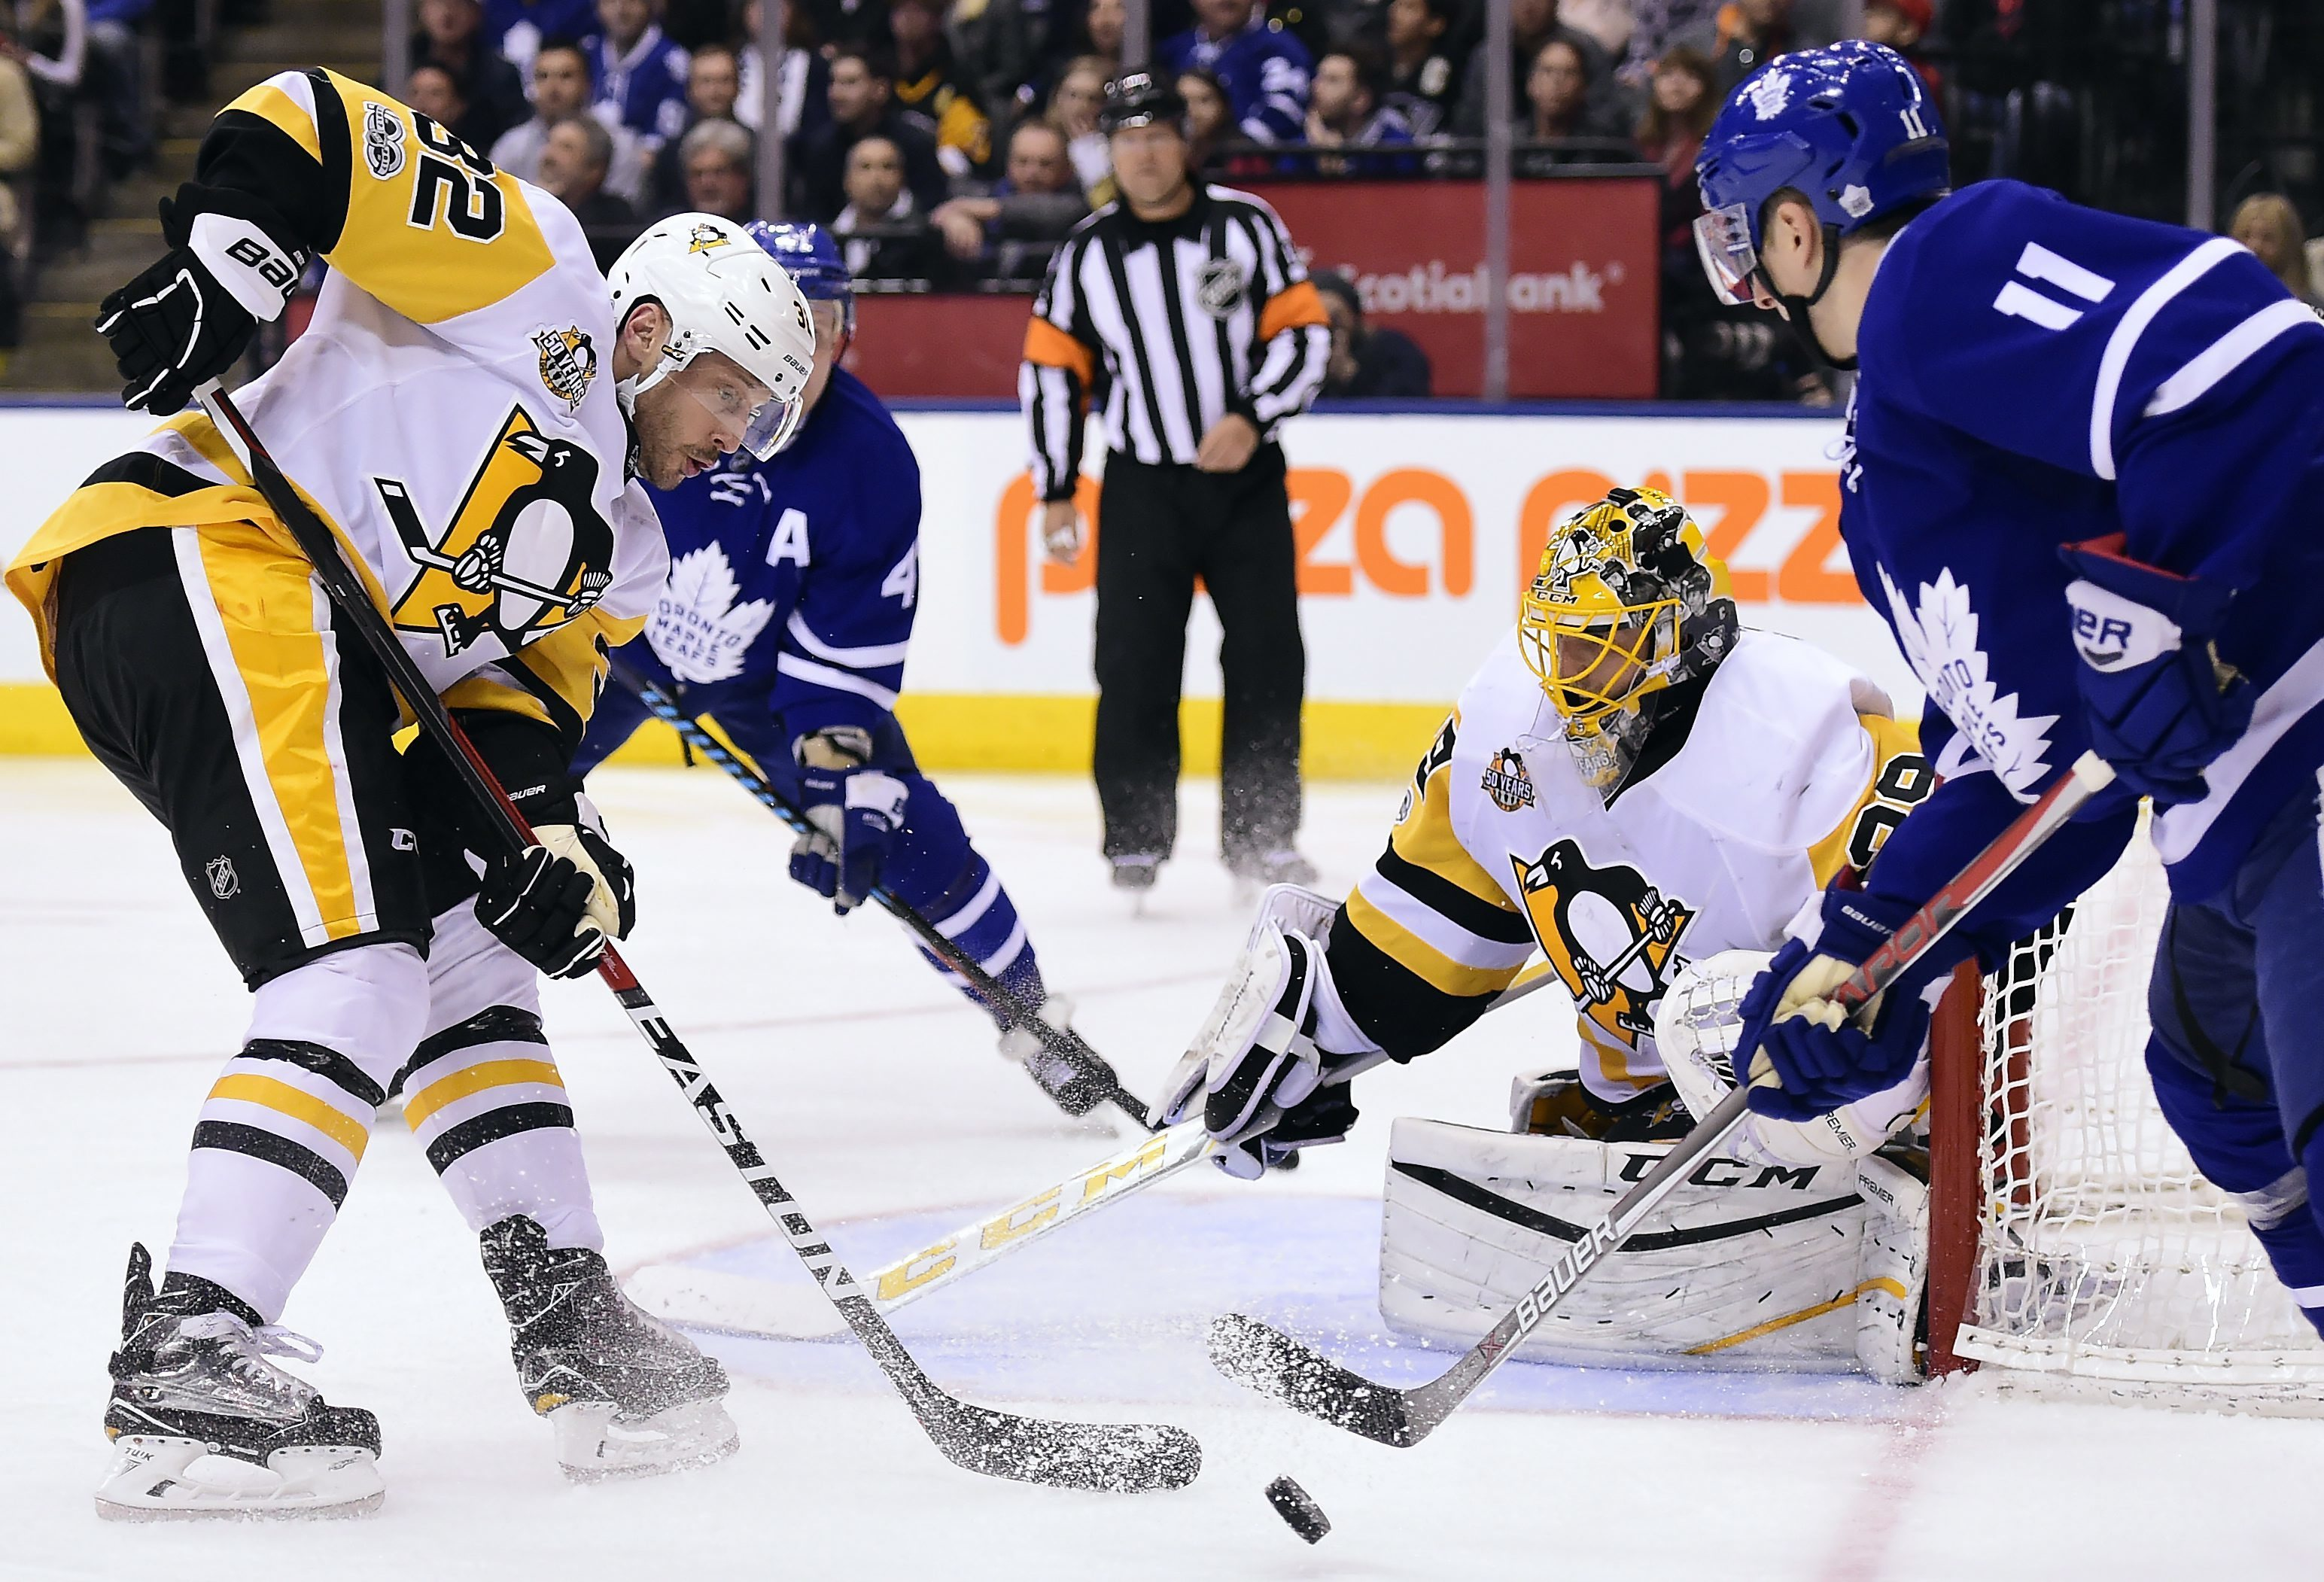 Maple Leafs drop finale, will face Capitals in first round